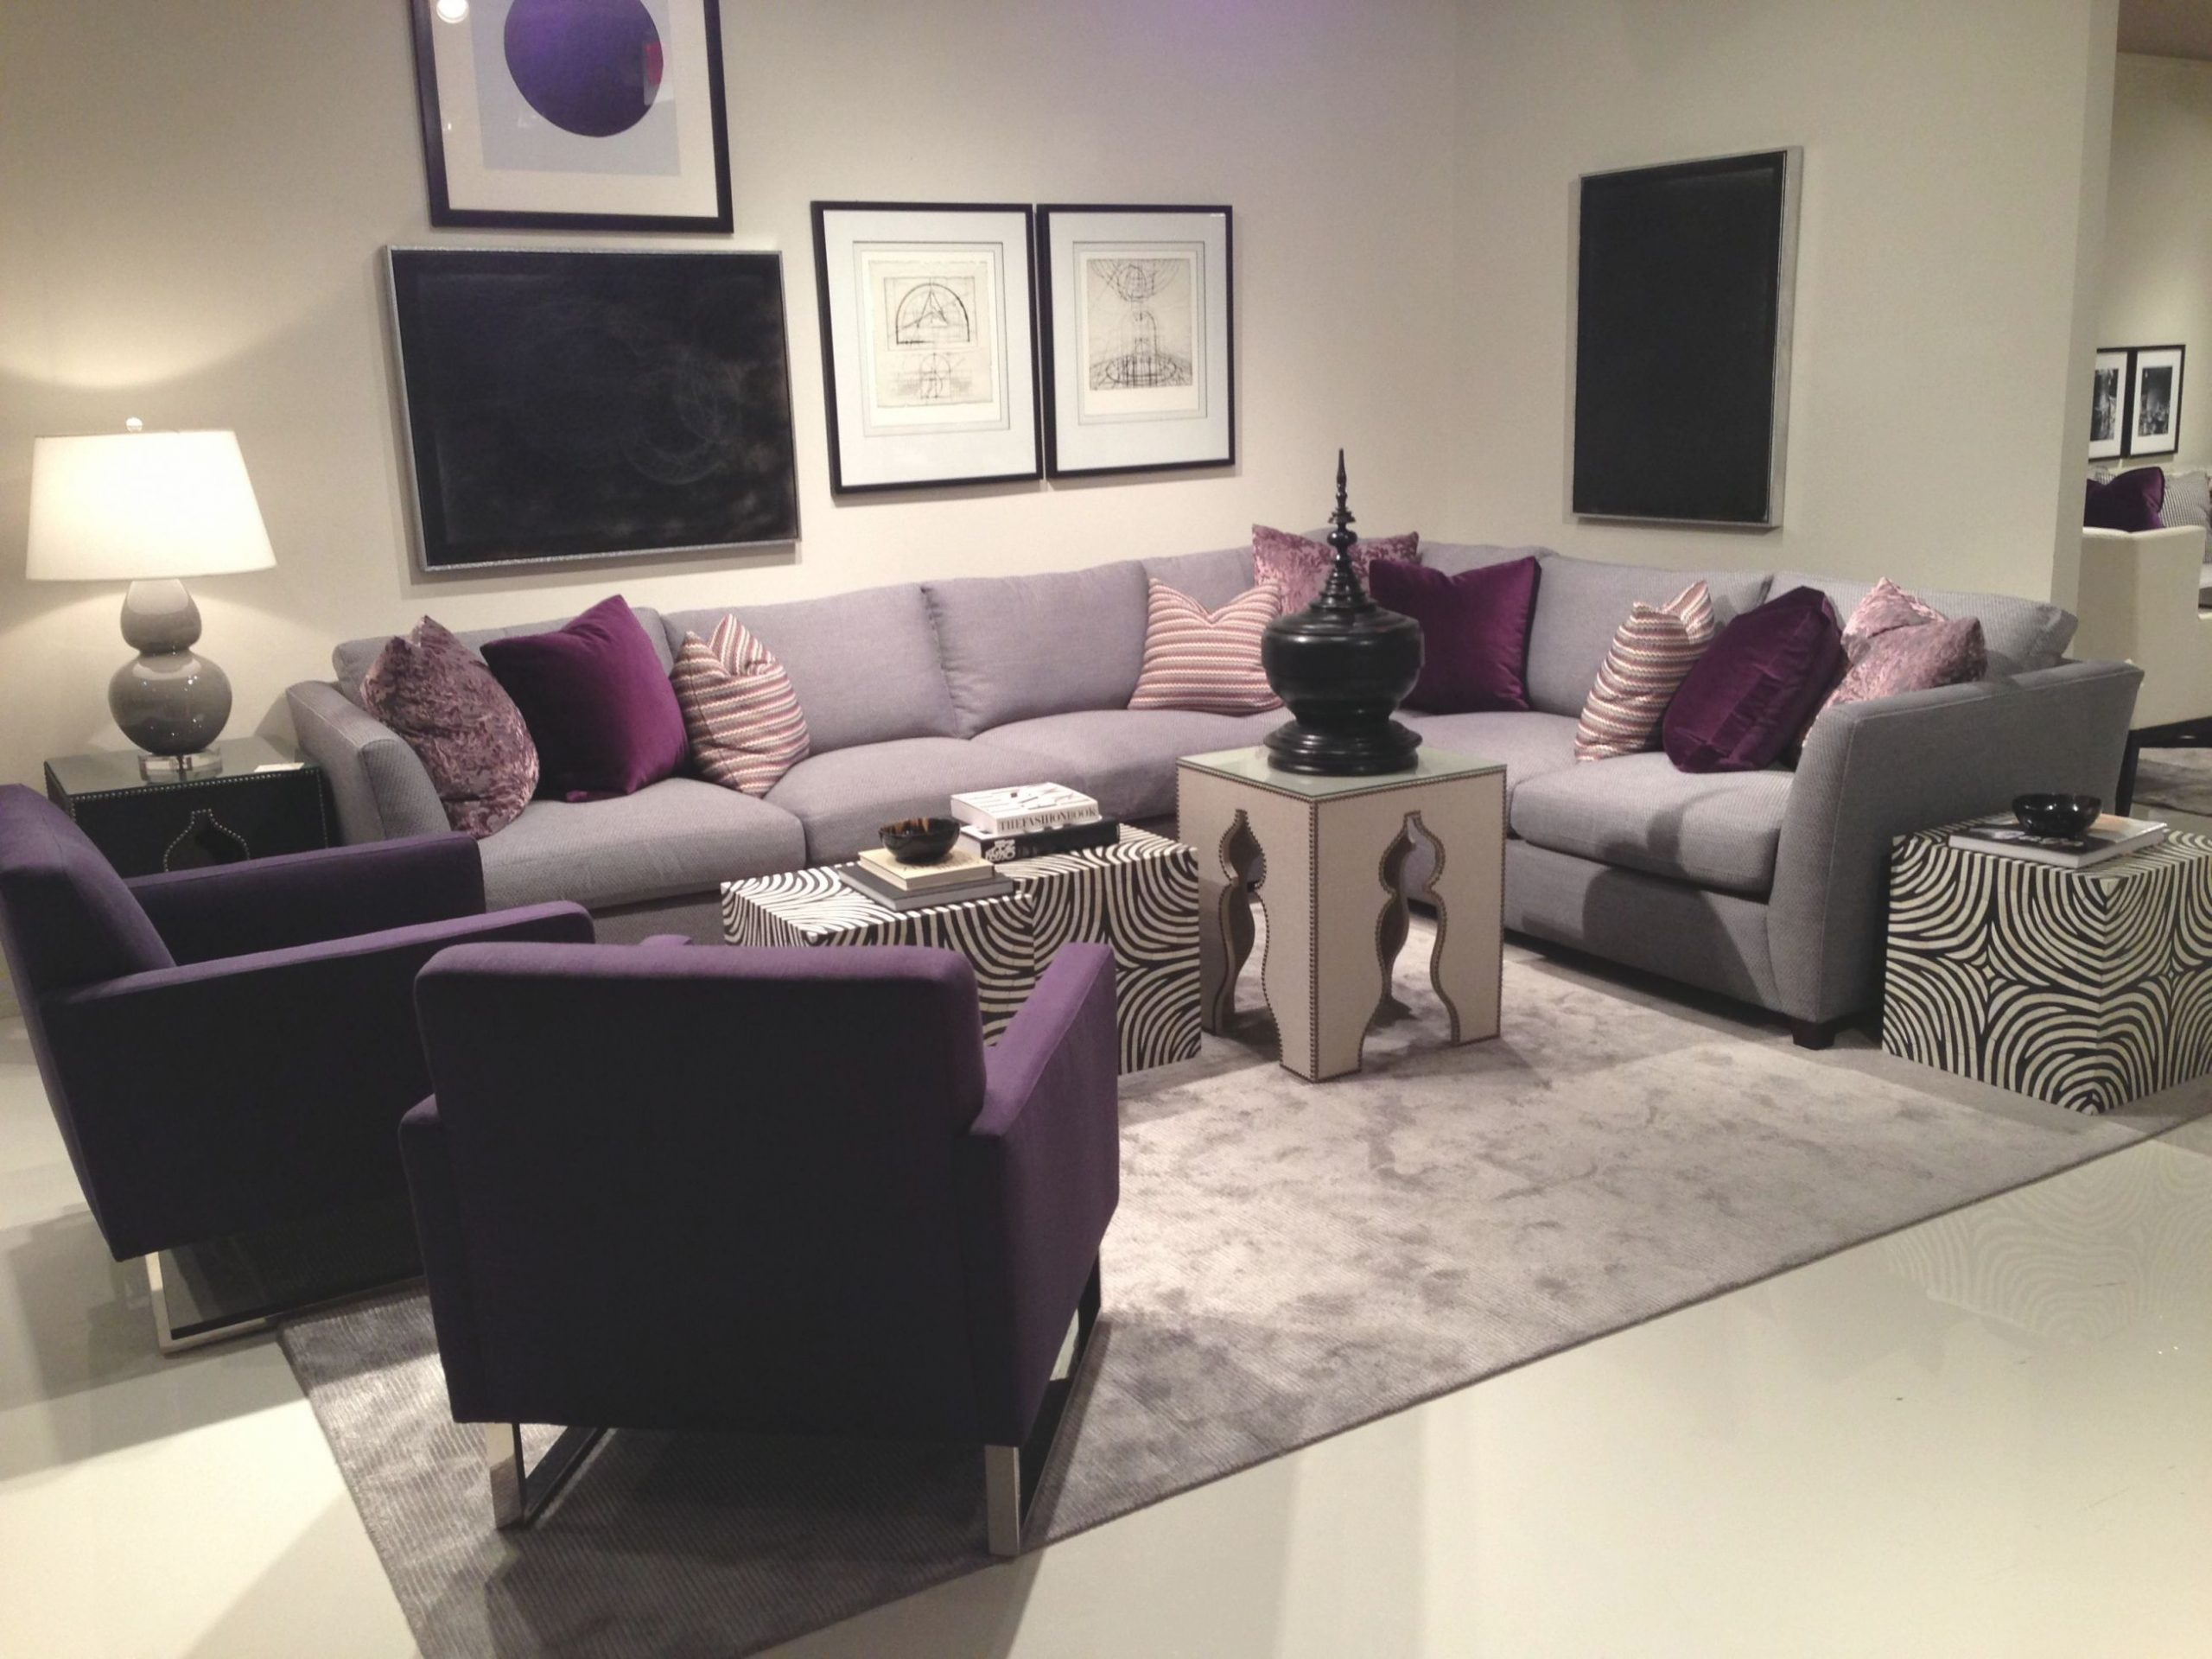 Love Purple With Images Living Room Decor Gray Purple For Purple And Green Living Room Decor Awesome Decors